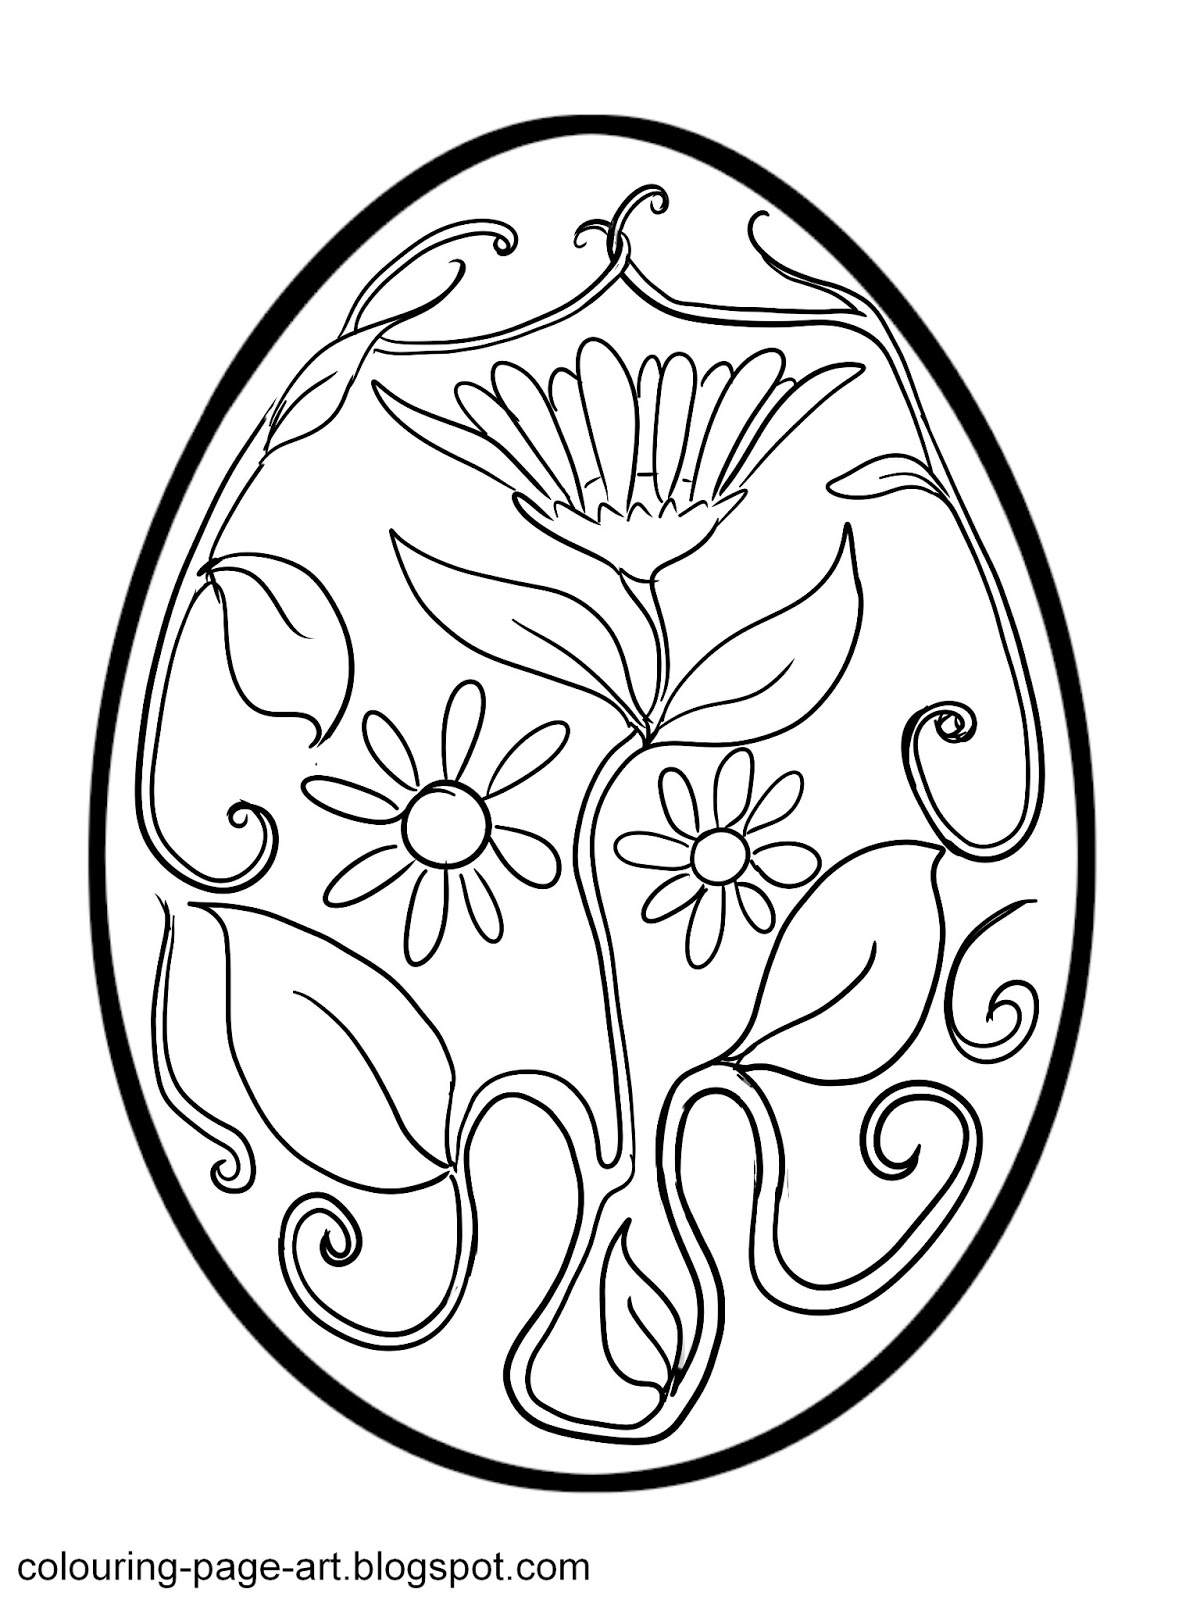 coloring pages free printable full size pictures to color - HD 1023×1392